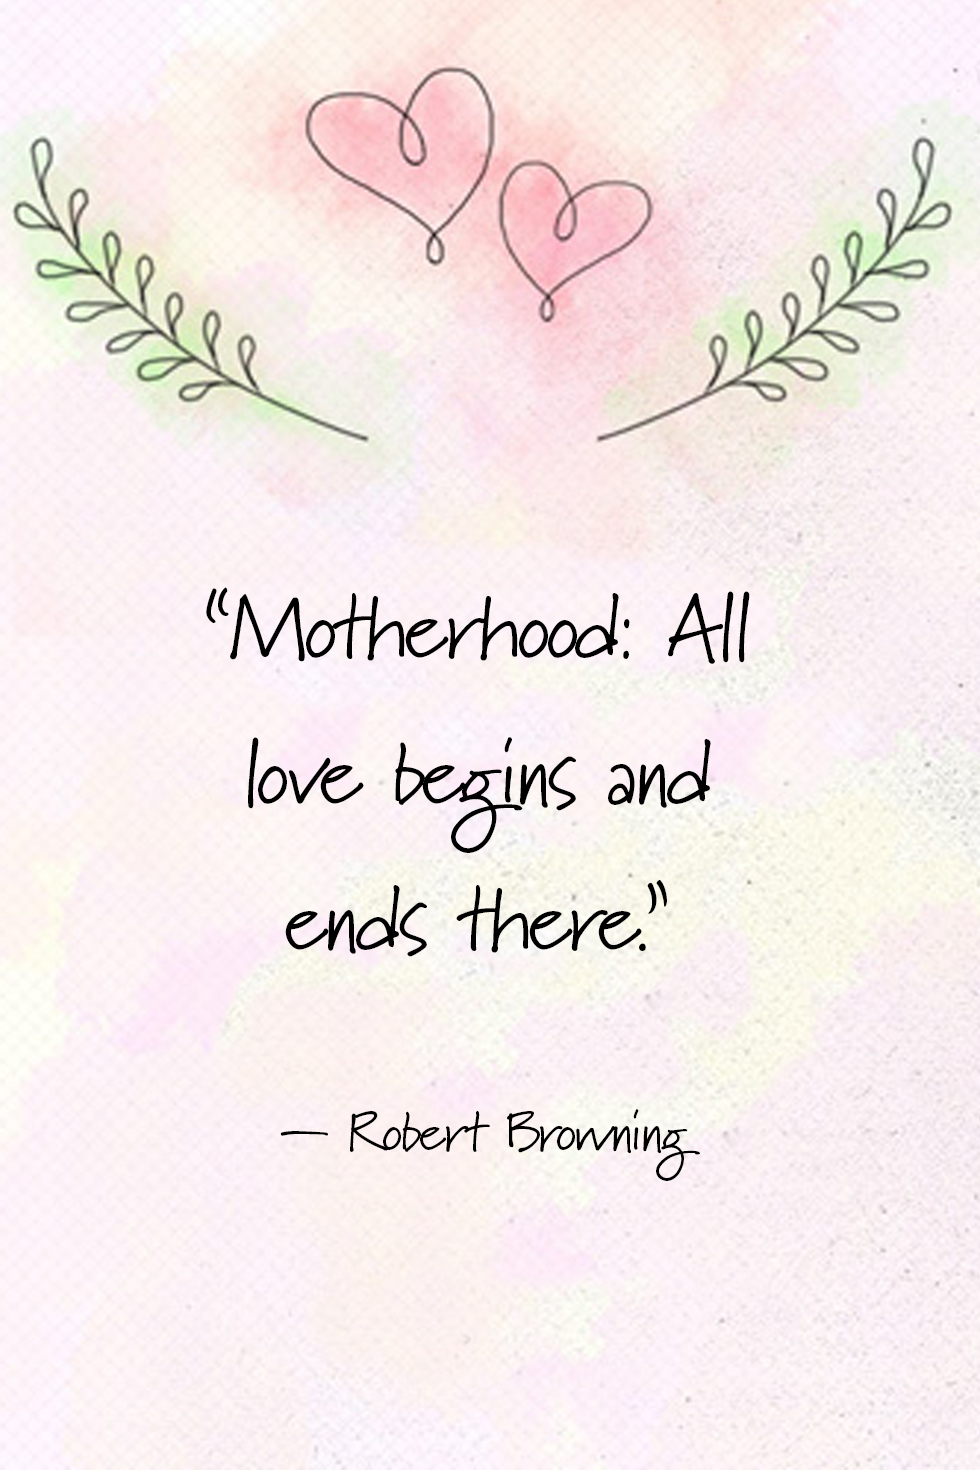 short mothers day quotes poems meaningful happy mother s 10 short mothers day quotes poems meaningful happy mother s day sayings